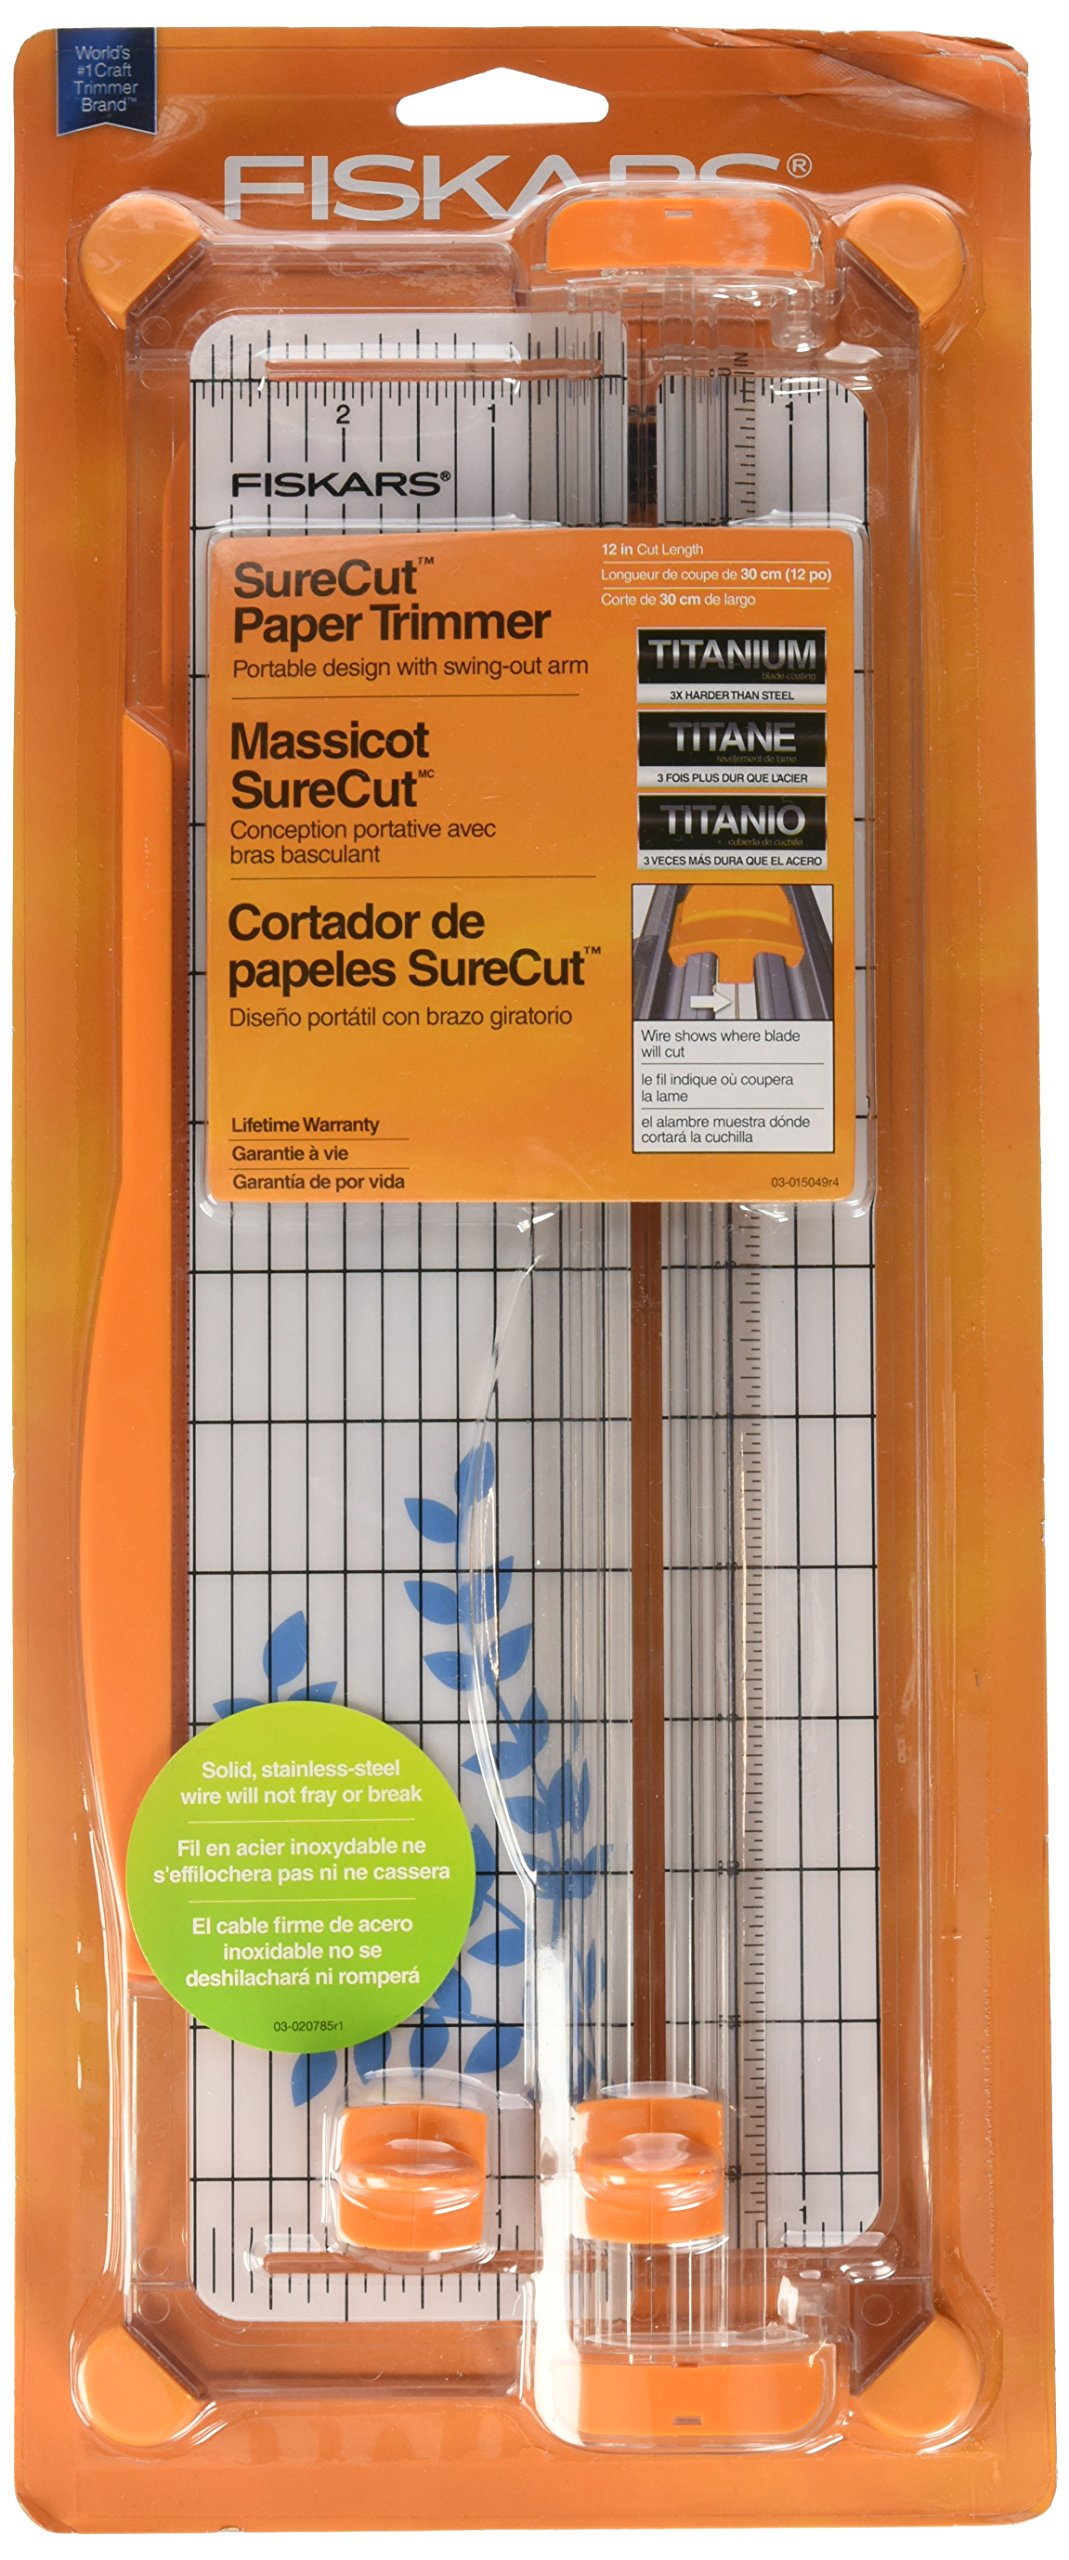 Fiskars SureCut Deluxe Craft Paper Trimmer, 12-Inch Cut Length (1298937797)